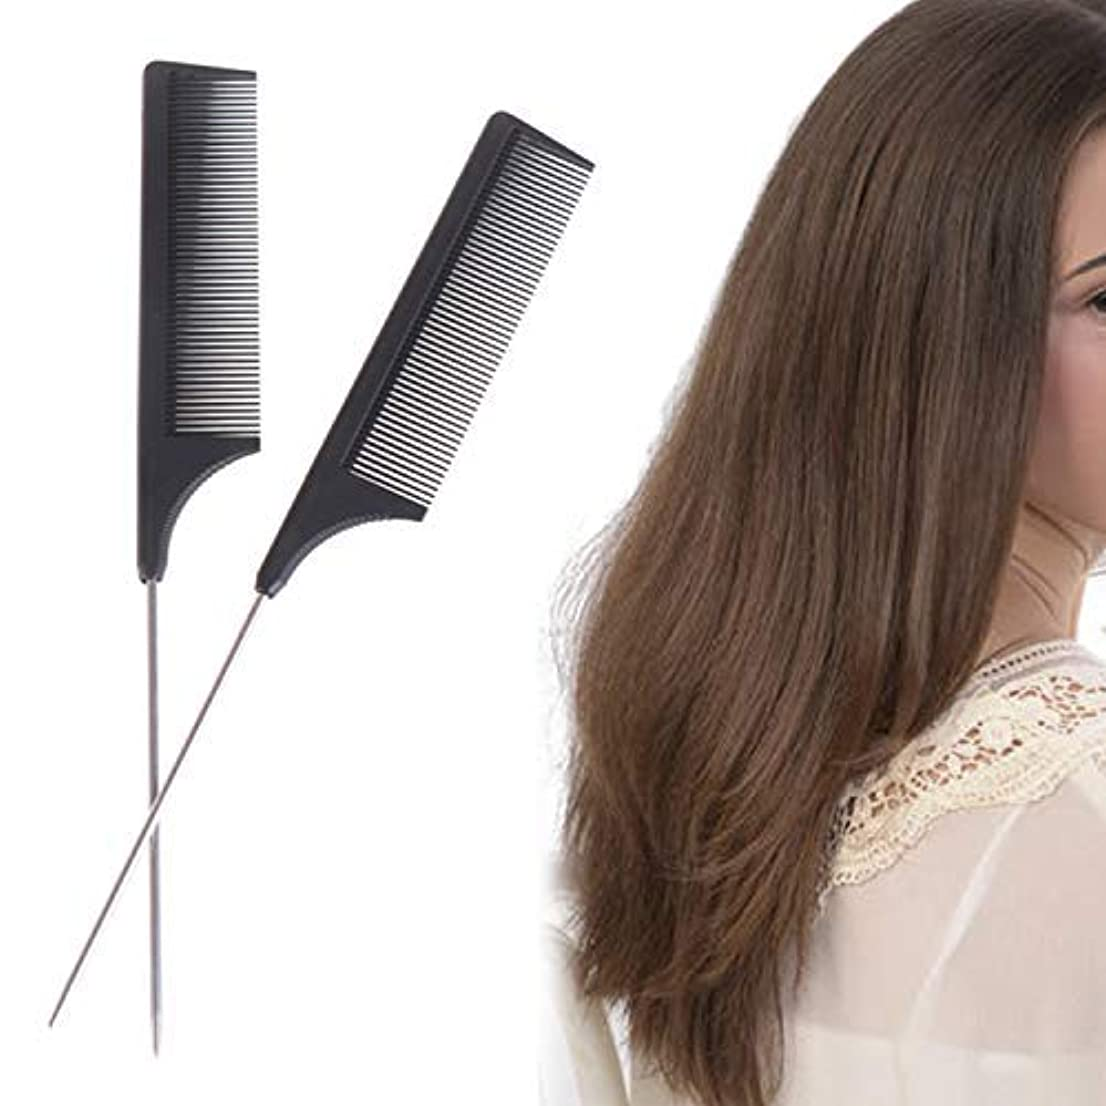 2 Pieces Comb Black Tail Styling Comb Chemical Heat Resistant Teasing Comb Carbon Fiber Hair Styling Combs for...